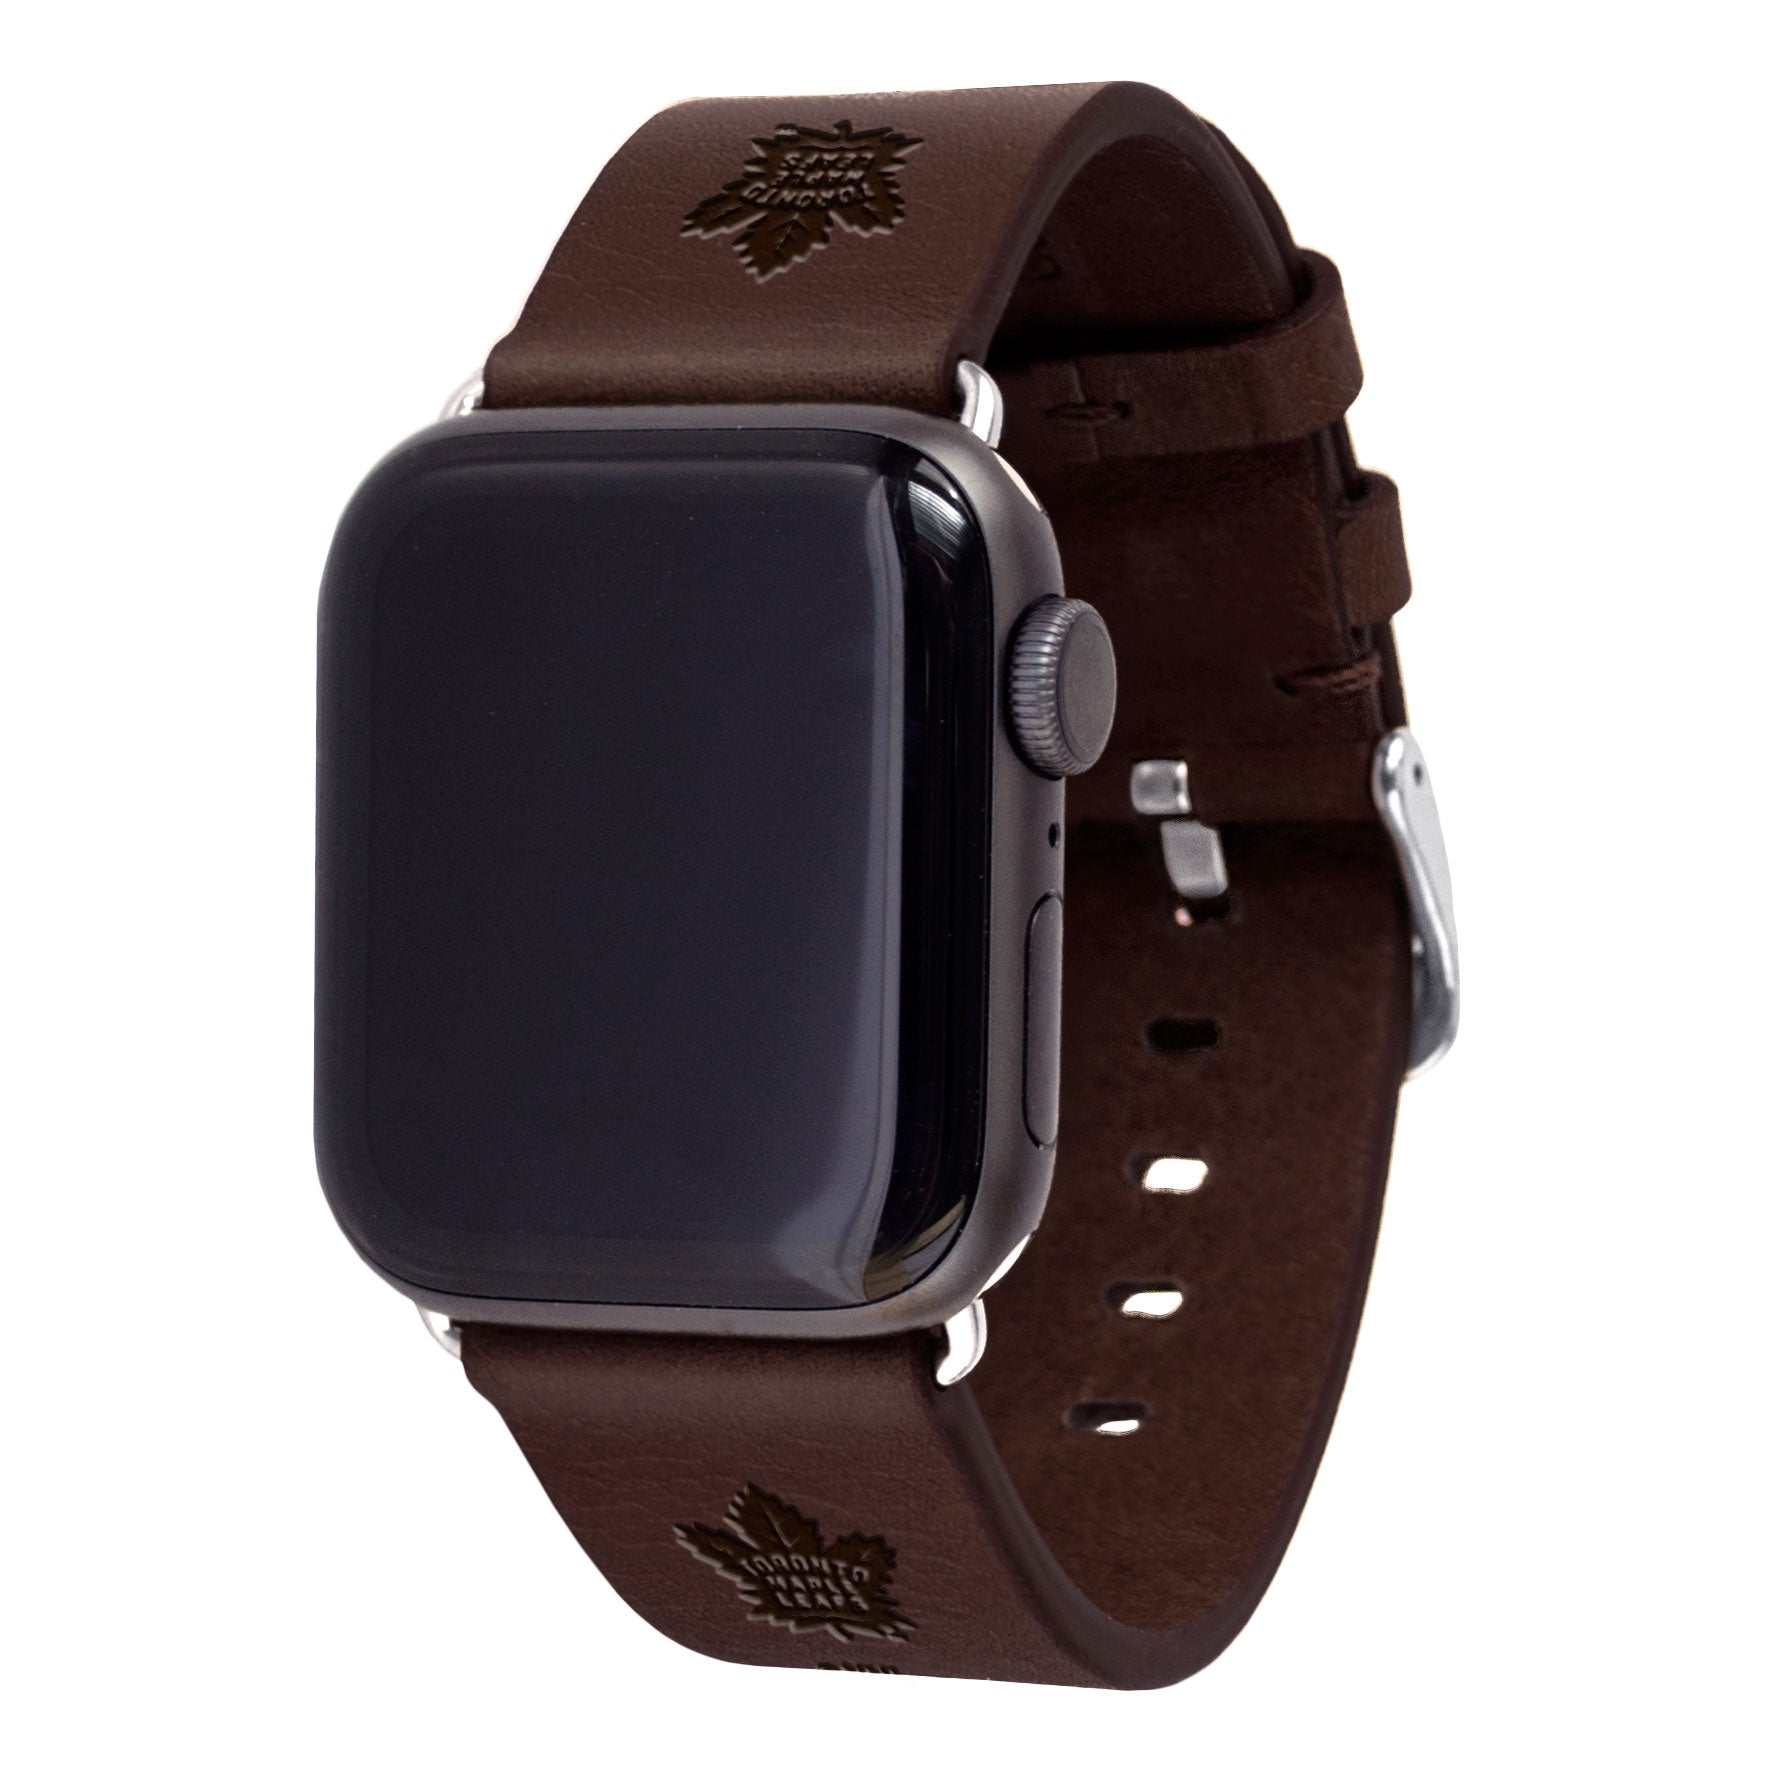 Toronto Maple Leafs Leather Apple Watch Band - AffinityBands